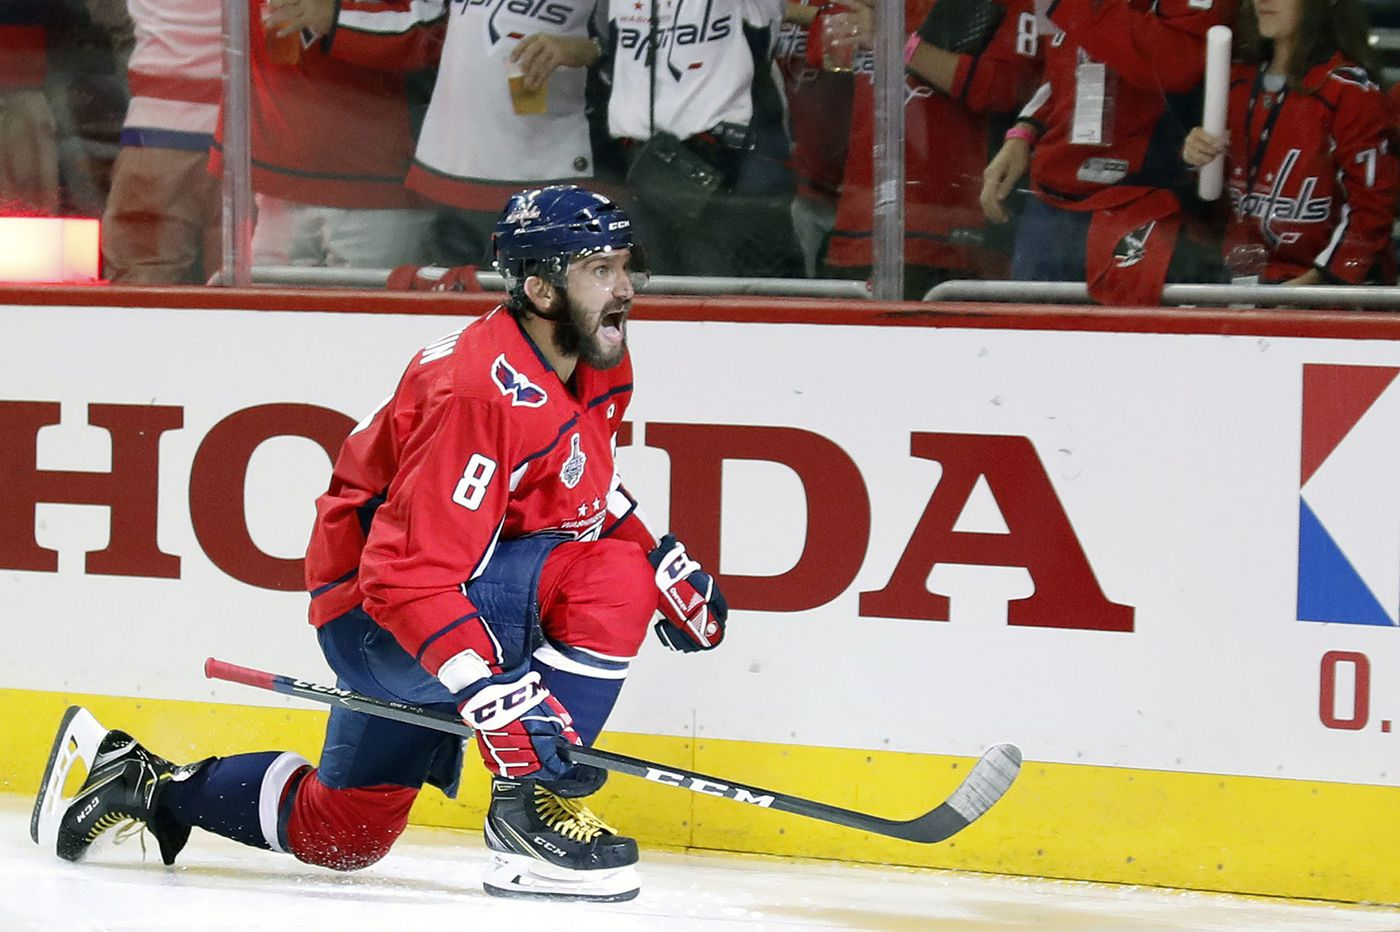 Capitals move within two games of Stanley Cup with 3-1 win over Golden Knights